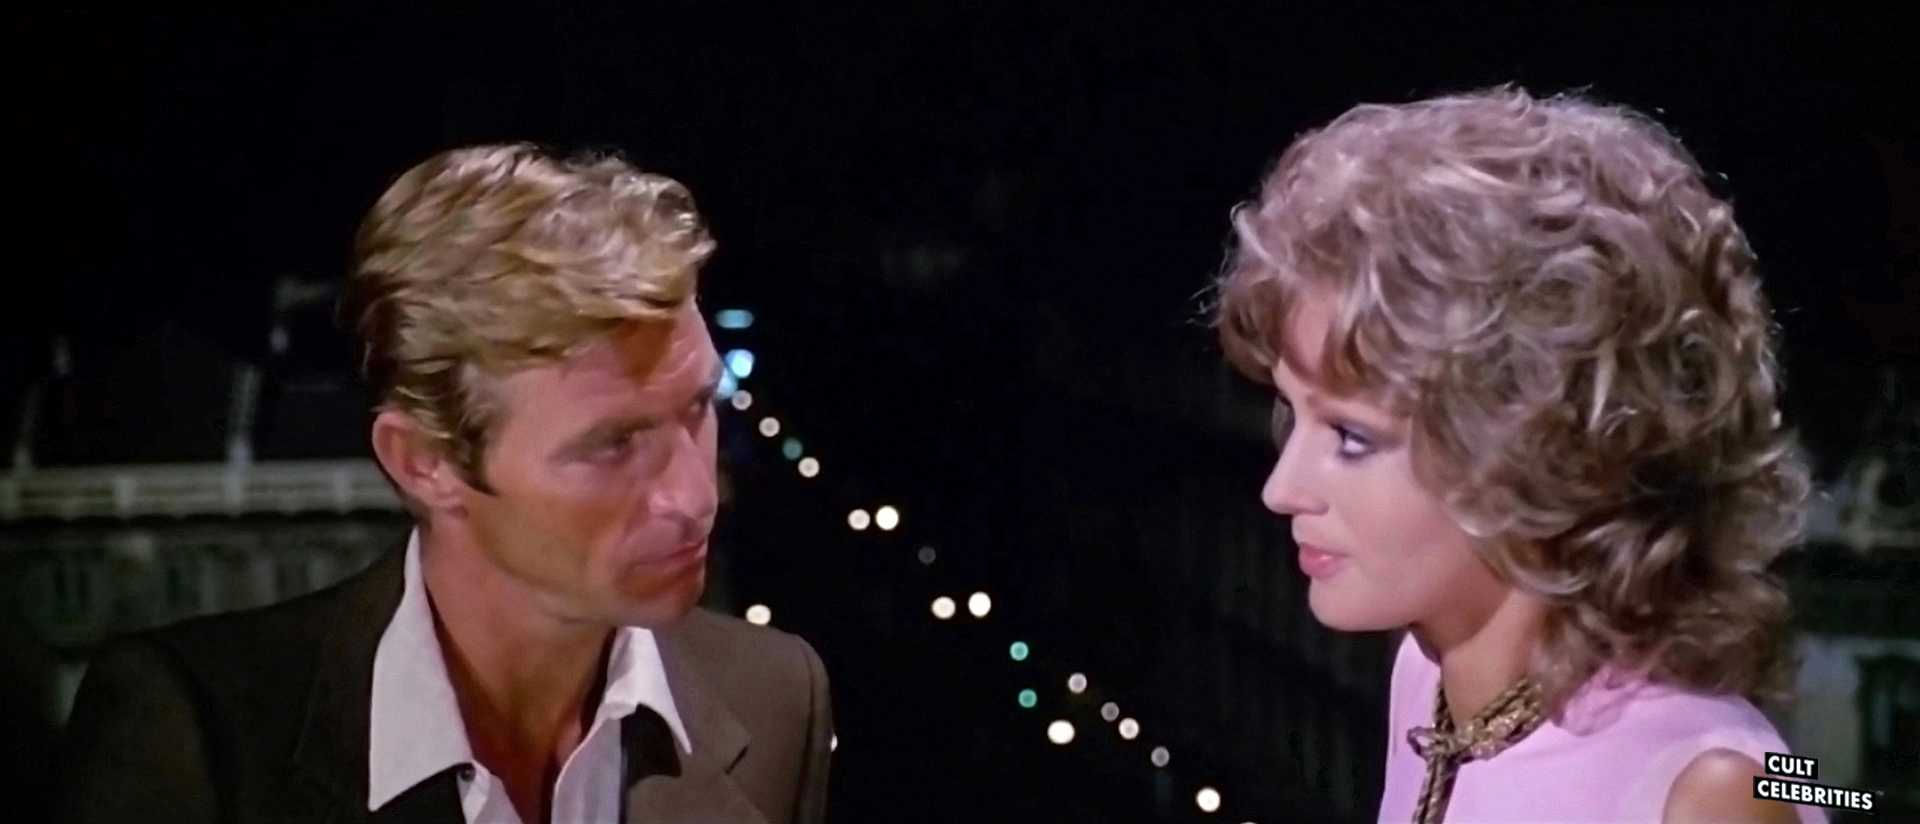 Catherine Spaak and James Franciscus in The Cat o' Nine Tails (1971)